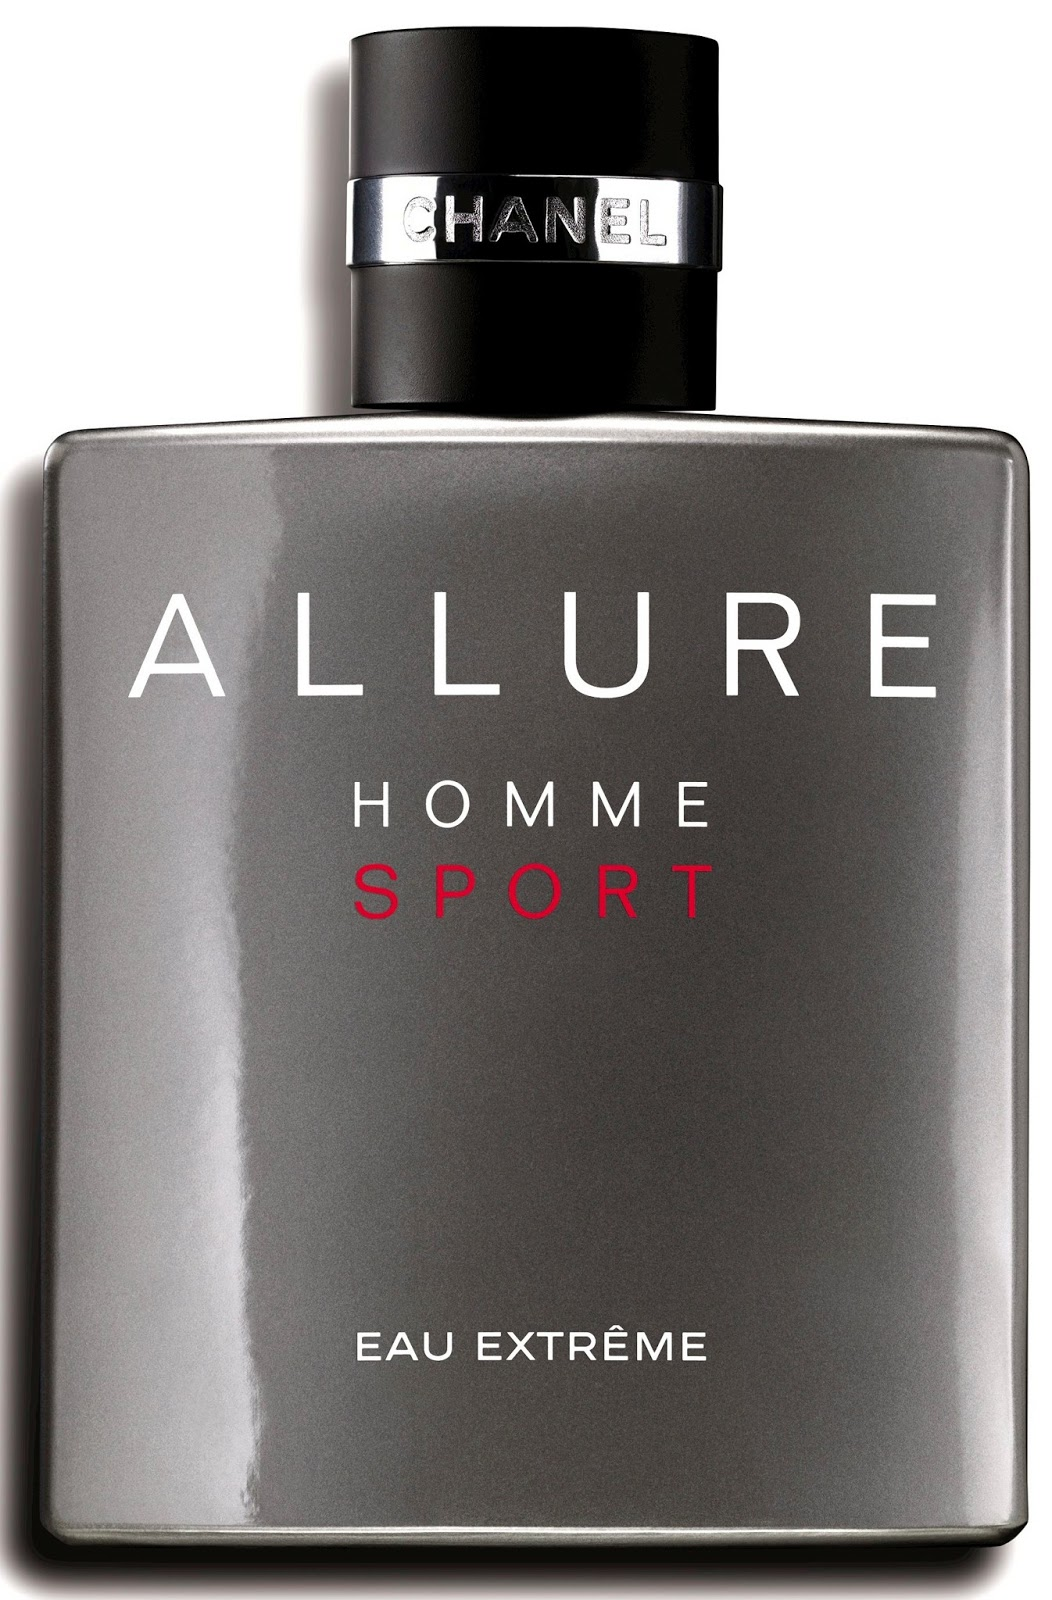 chanel allure homme sport eau extreme. sweet musk (vanilla and tonka beans), mix with tart spices (black pepper) warm woody accords (cedar sandlewood) in the mid base tones, chanel allure homme sport eau extreme